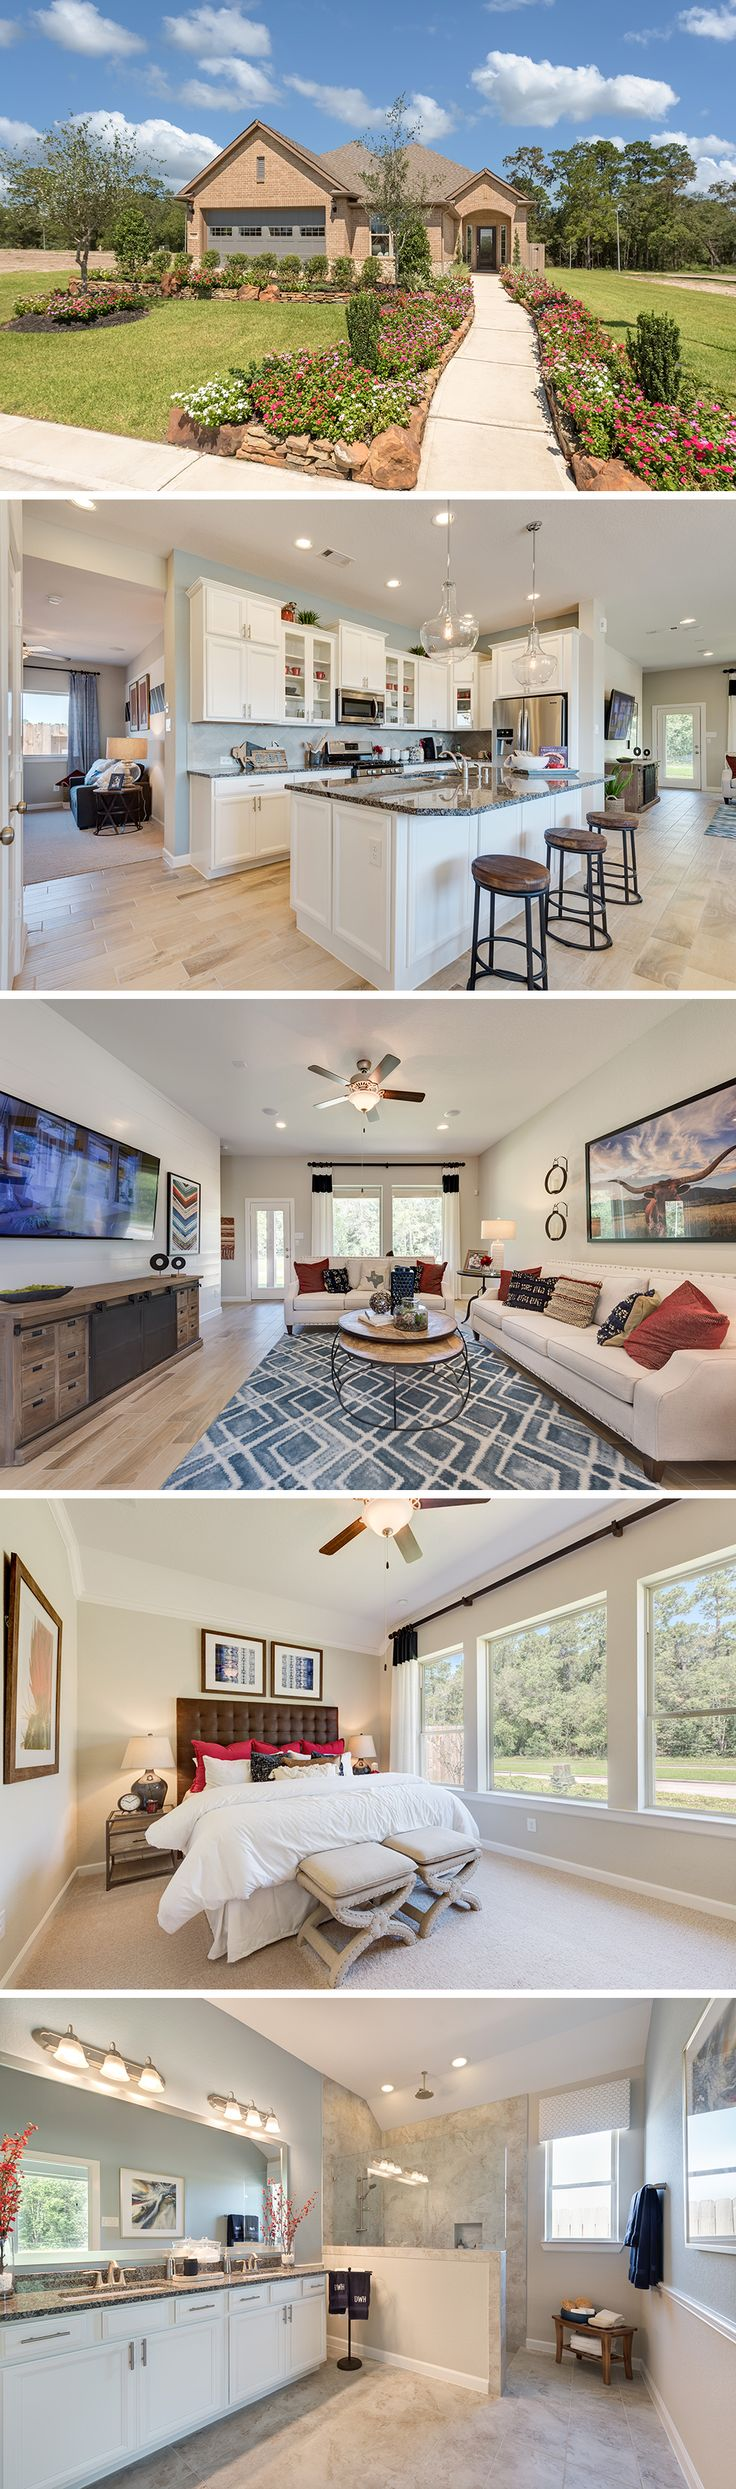 best 25 unique floor plans ideas on pinterest small home plans small house layout and tiny. Black Bedroom Furniture Sets. Home Design Ideas